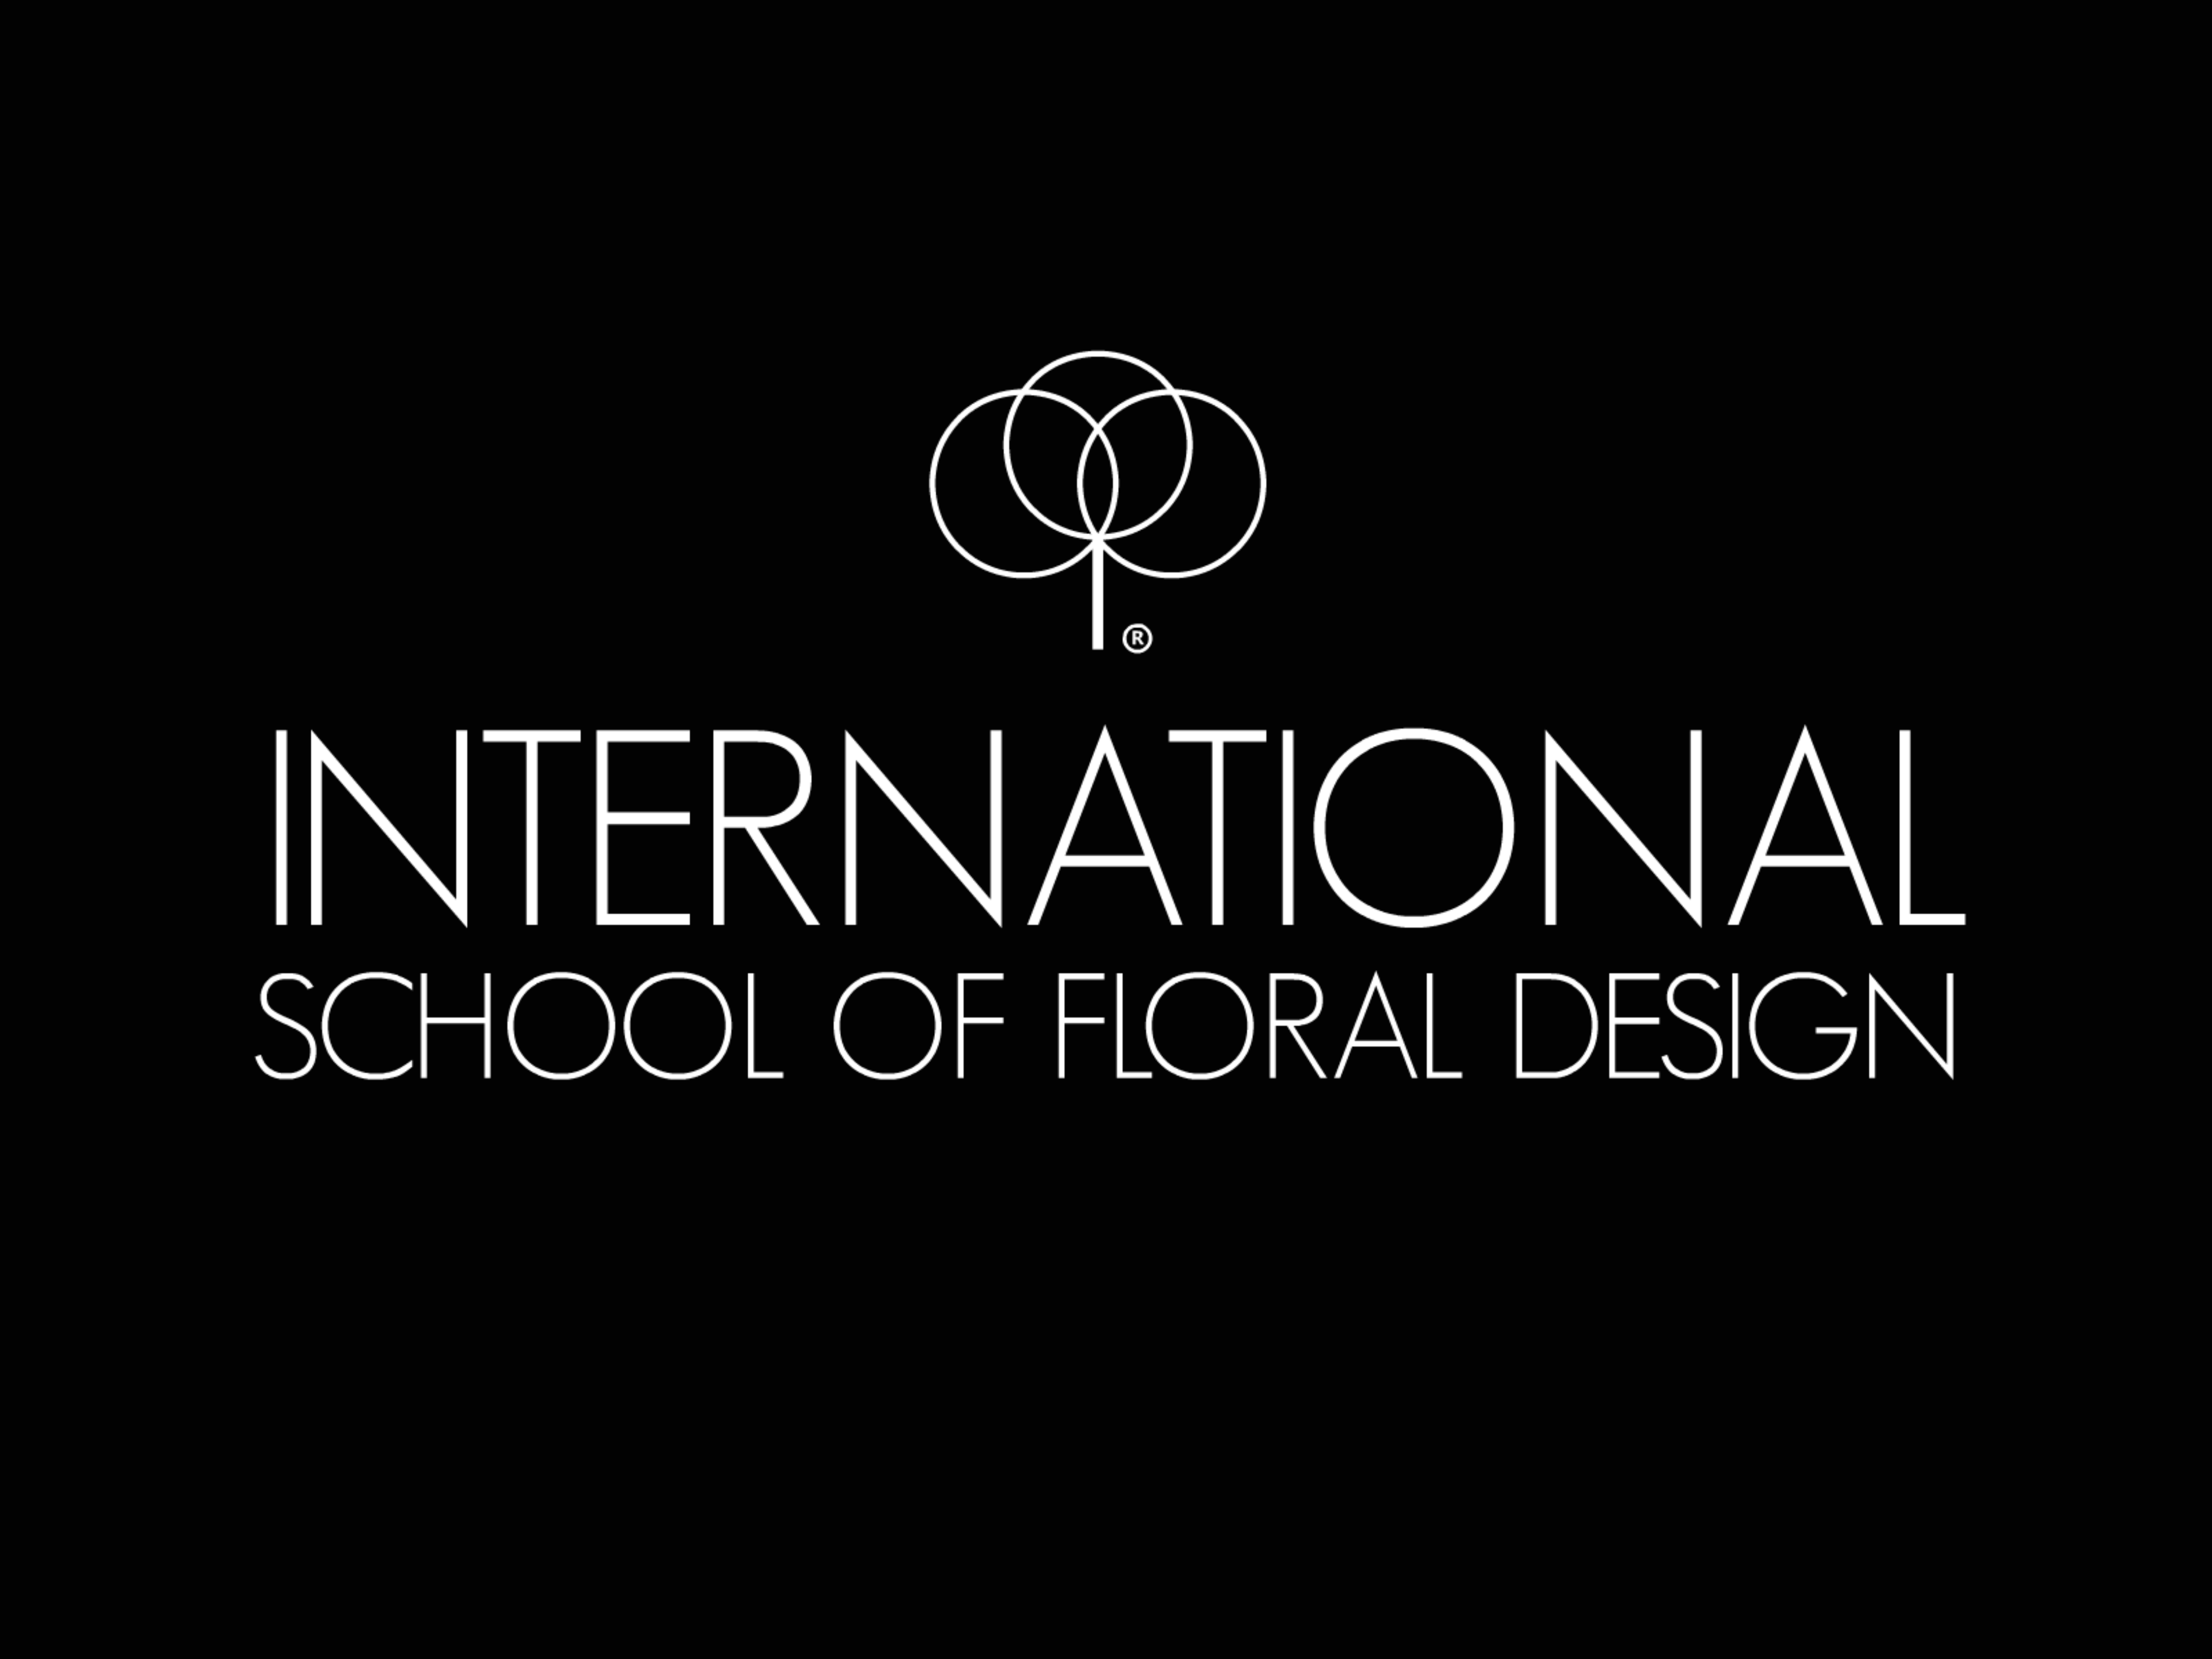 International School of Floral Design Logo